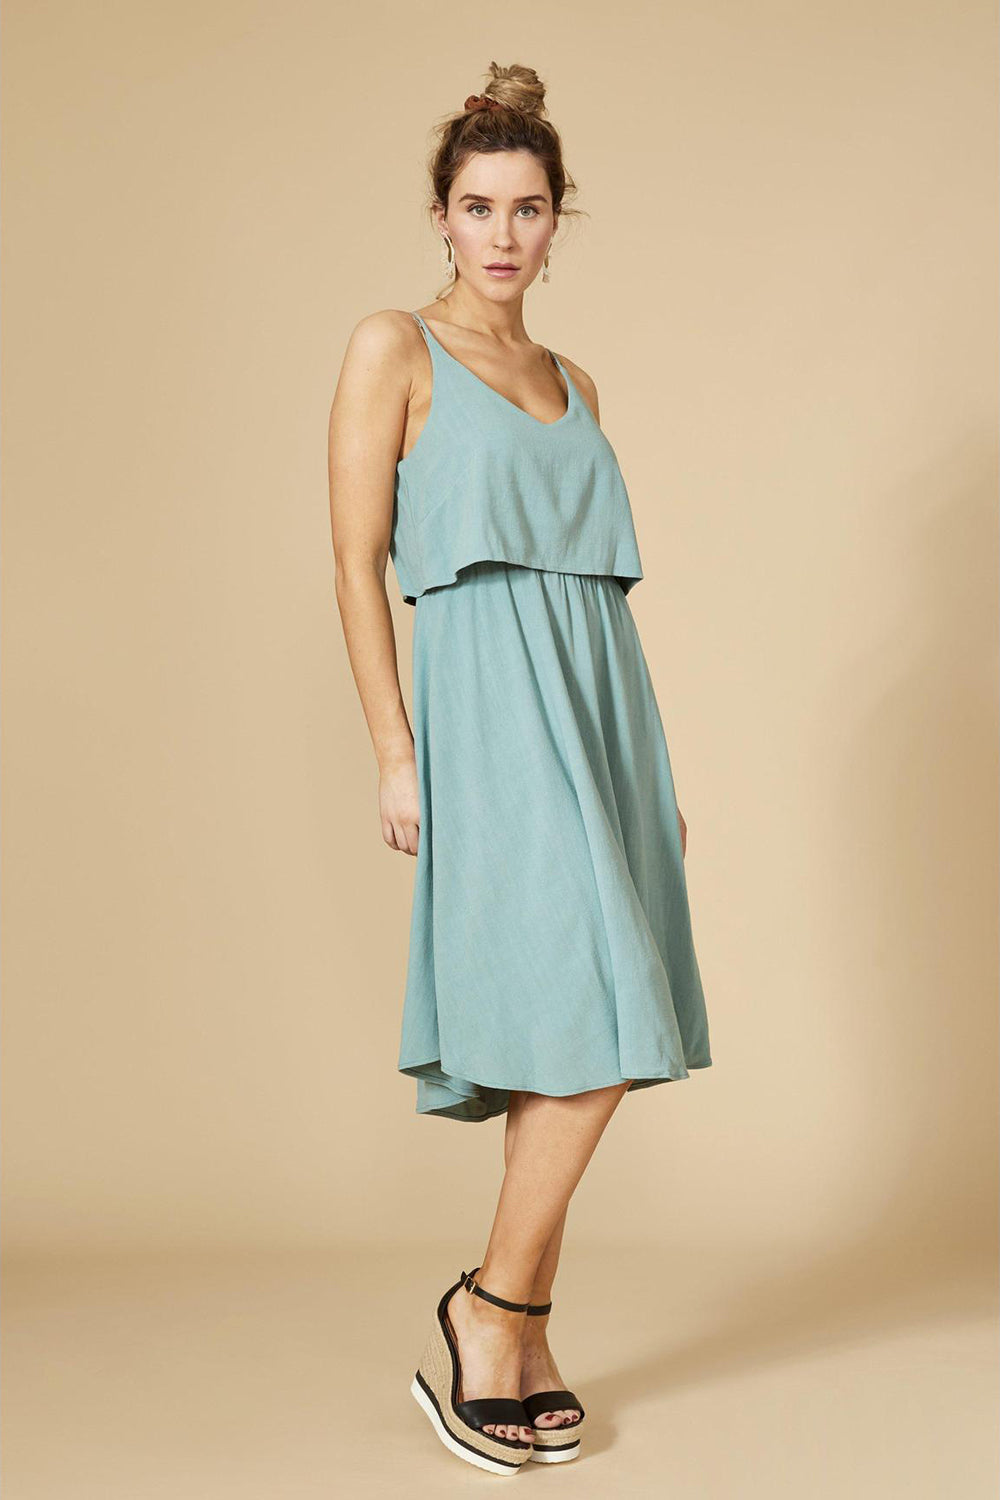 Aqua dress with spaghetti straps and rounded v-neck, knee length, with fluid cut. 70% cotton, 30% linen. Hand wash in cold water, air dry flat. Designed and Made in Montréal.